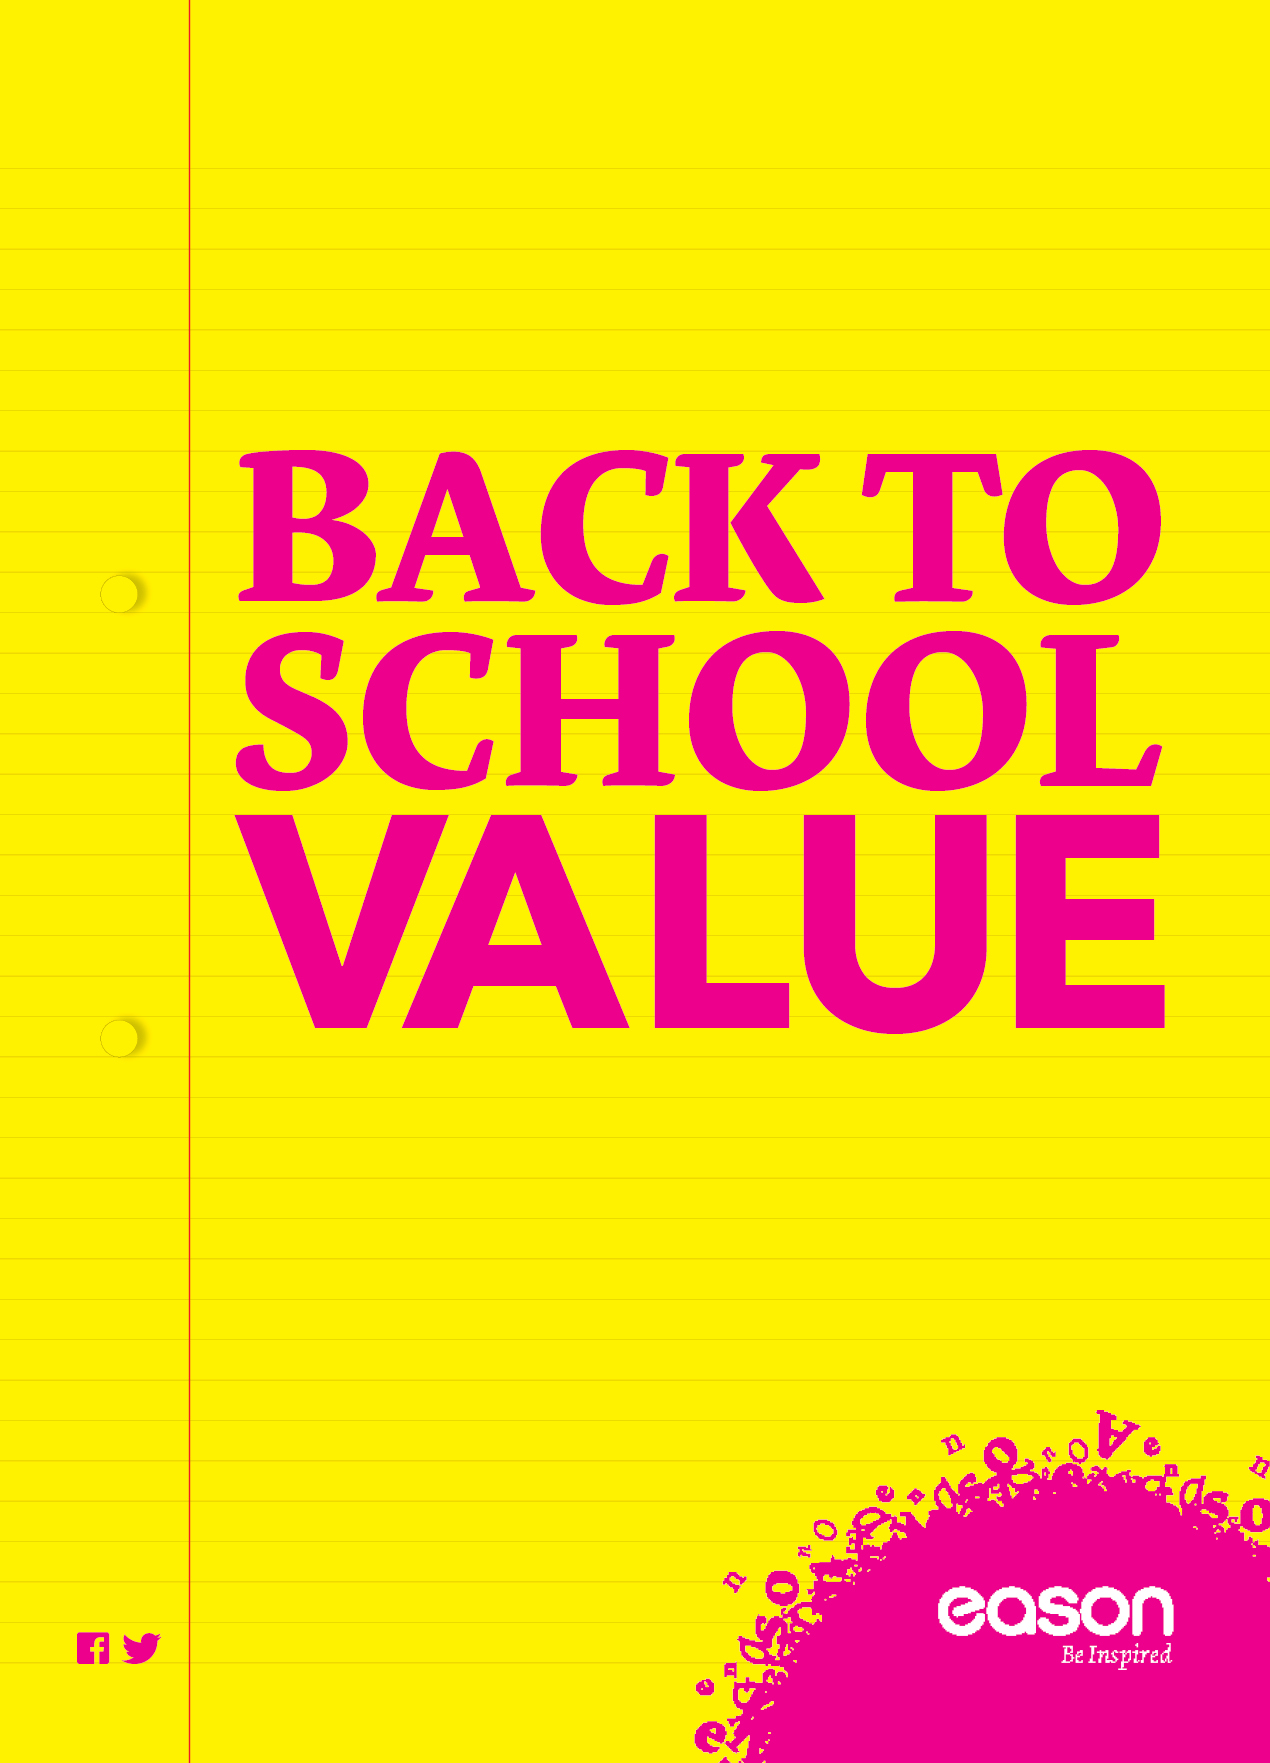 WIN WIN WIN €50 worth of back to school products compliments of Easons!